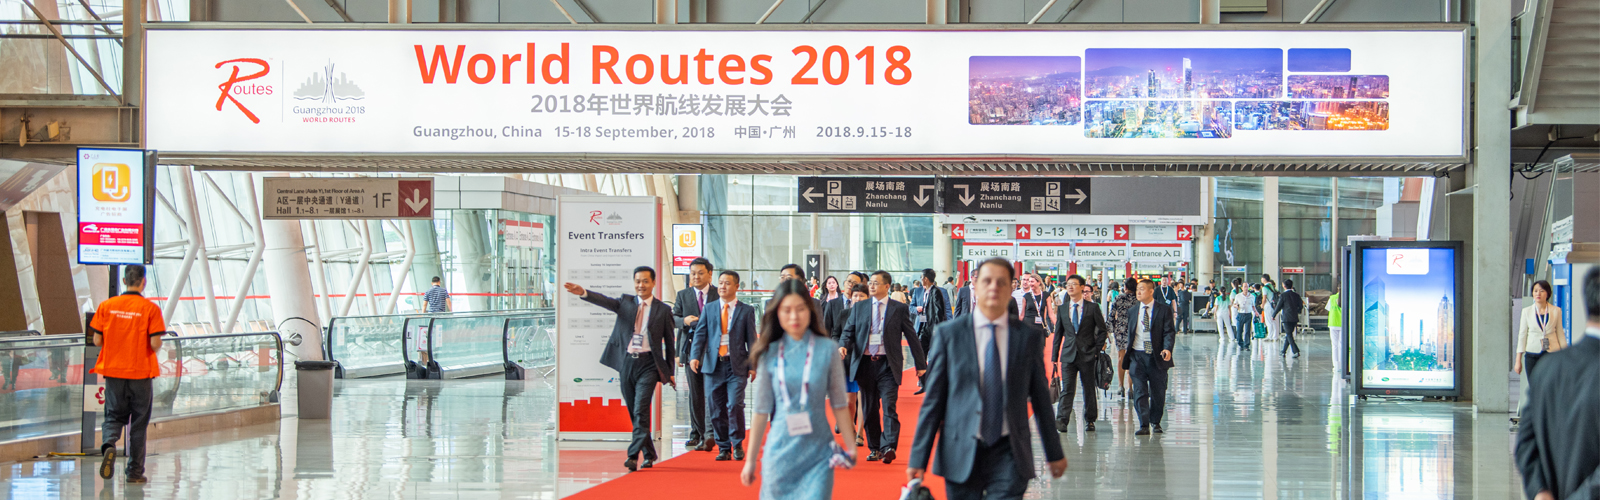 World Routes 2018 in Guangzhou, China